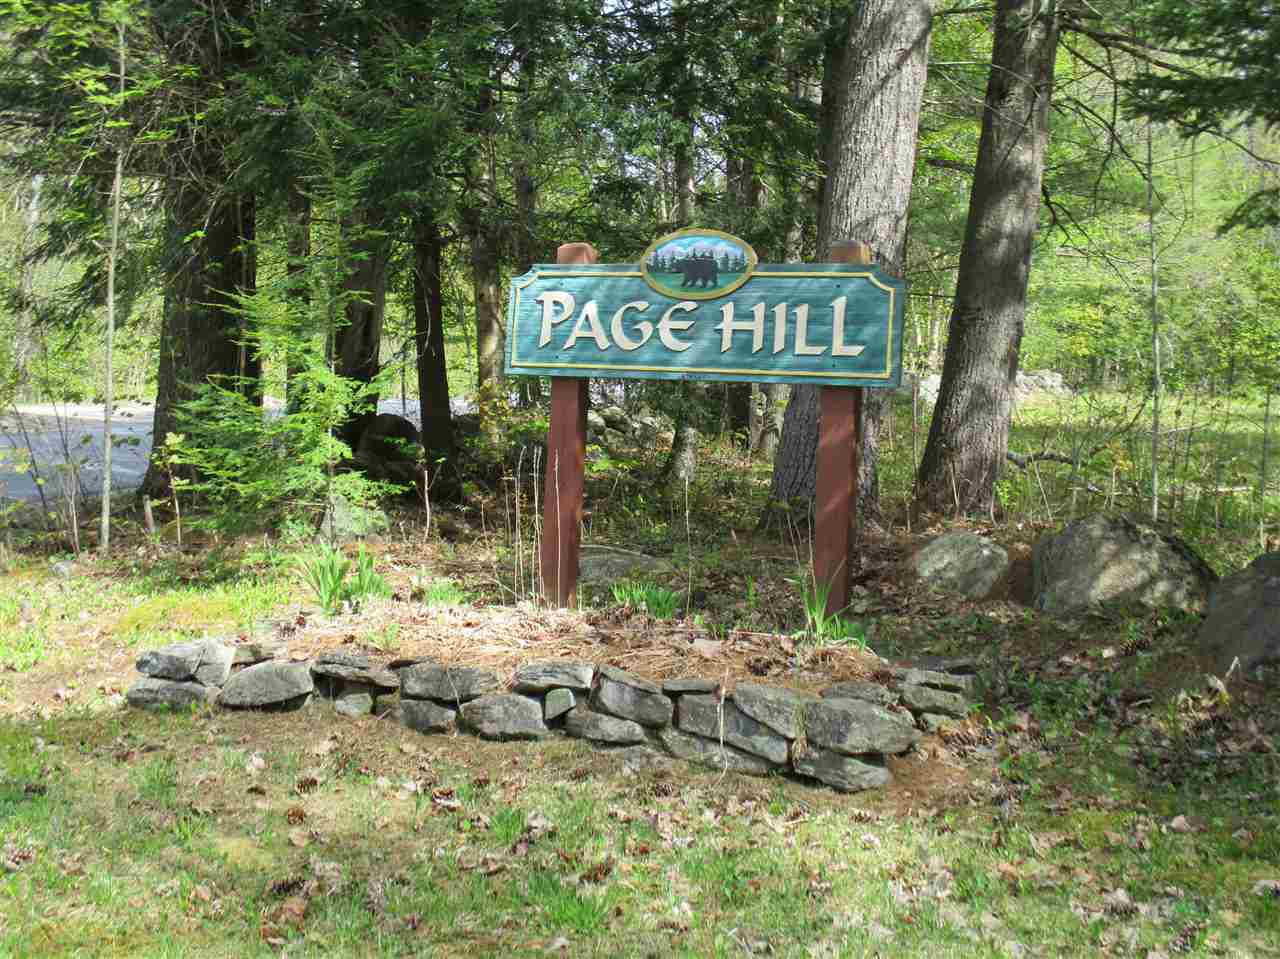 Page Hill invites you to become part of this dynamic community by claiming this 5 plus acre building site for your new home.  Builders are available to help you design and build your new dwelling using all the modern energy-saving techniques including solar panels, the latest approach to insulating and installing geo-thermal wells.  At Page Hill, there's no one blowing a whistle to tell you when to jump into the pool and that's a good thing because there are no pools or tennis courts or clubhouses pushing association fees into the stratosphere.  Page Hill dues are only $100 per year -- that's per year, not per month!!  Call us eight days a week for a personal introduction to this property.